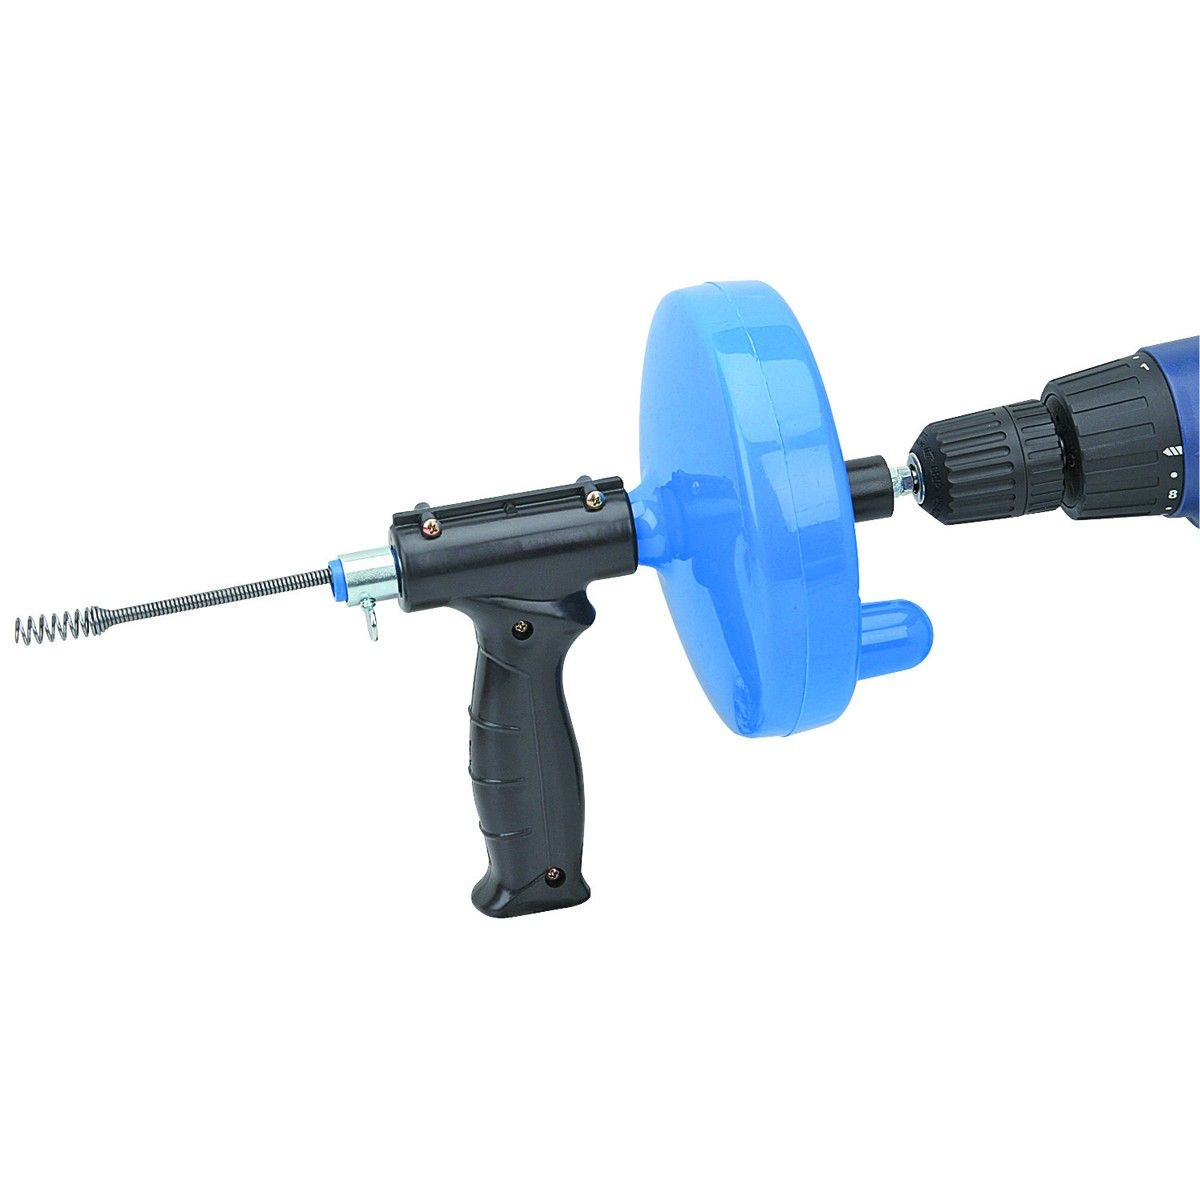 25 Ft Drain Cleaner With Drill Attachment Drain Cleaner Plumbing Drains Clean Sink